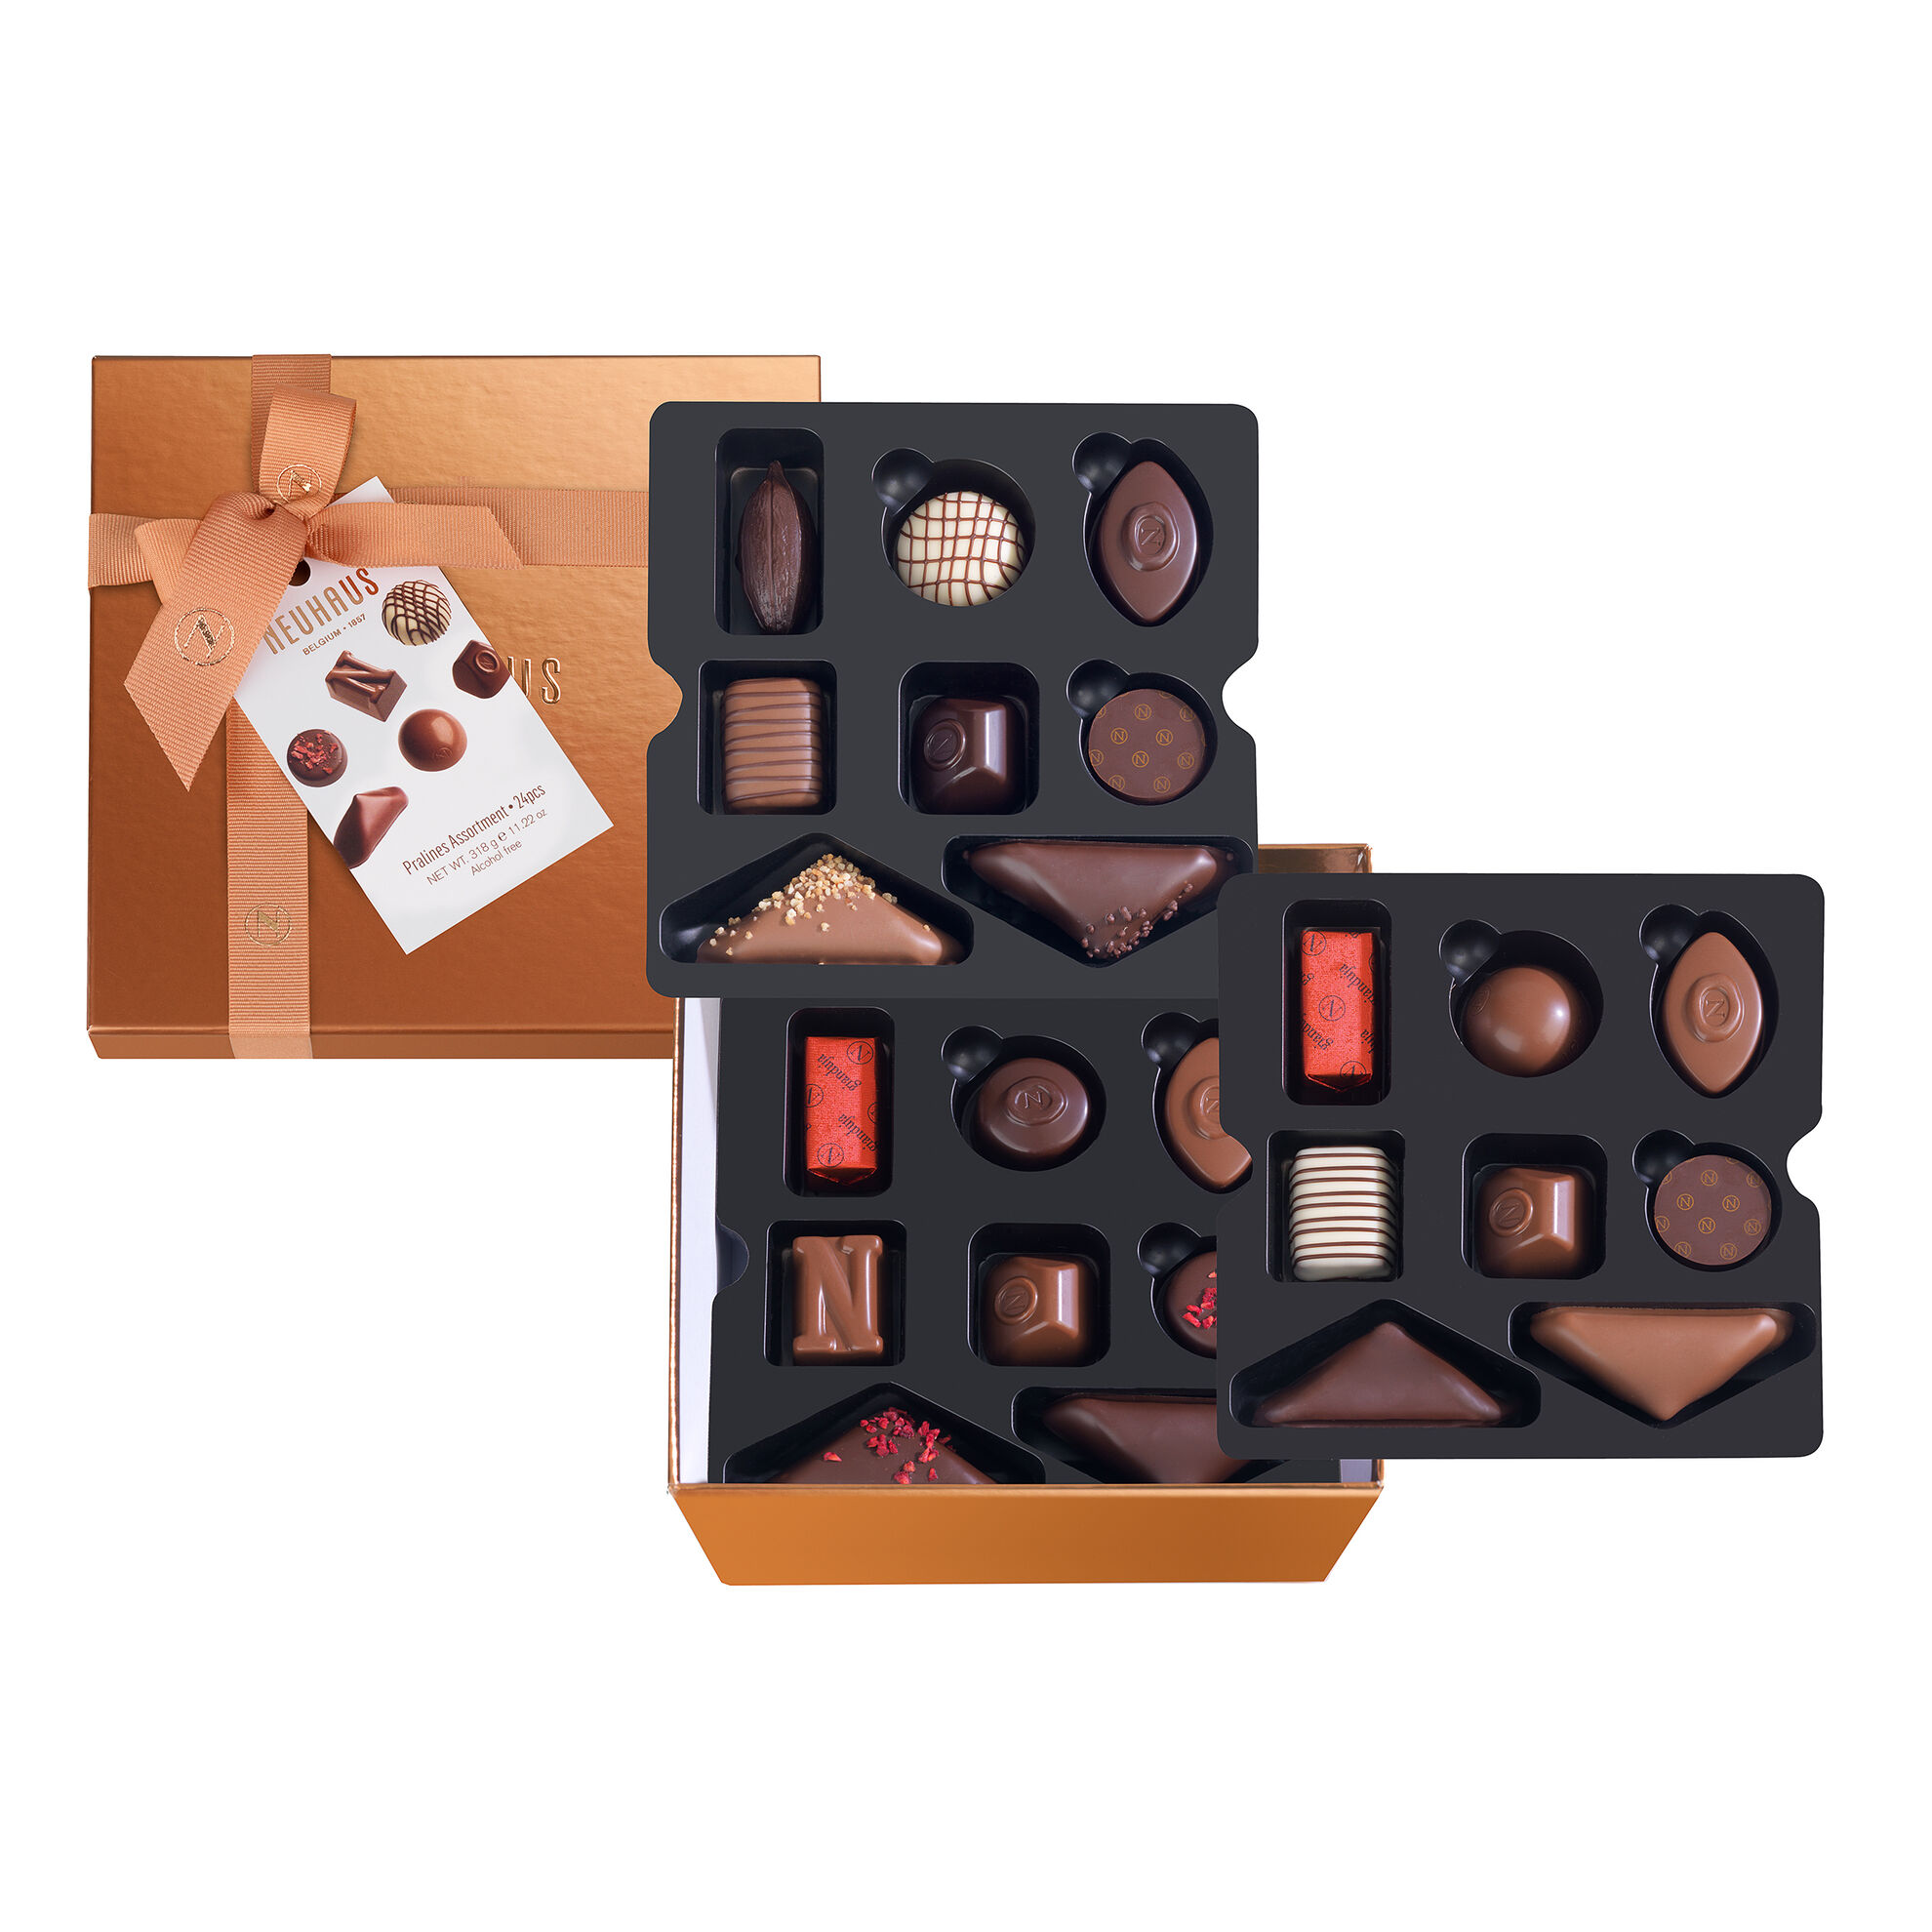 Large Square Gift Box With Ribbon 24 pcs image number 01